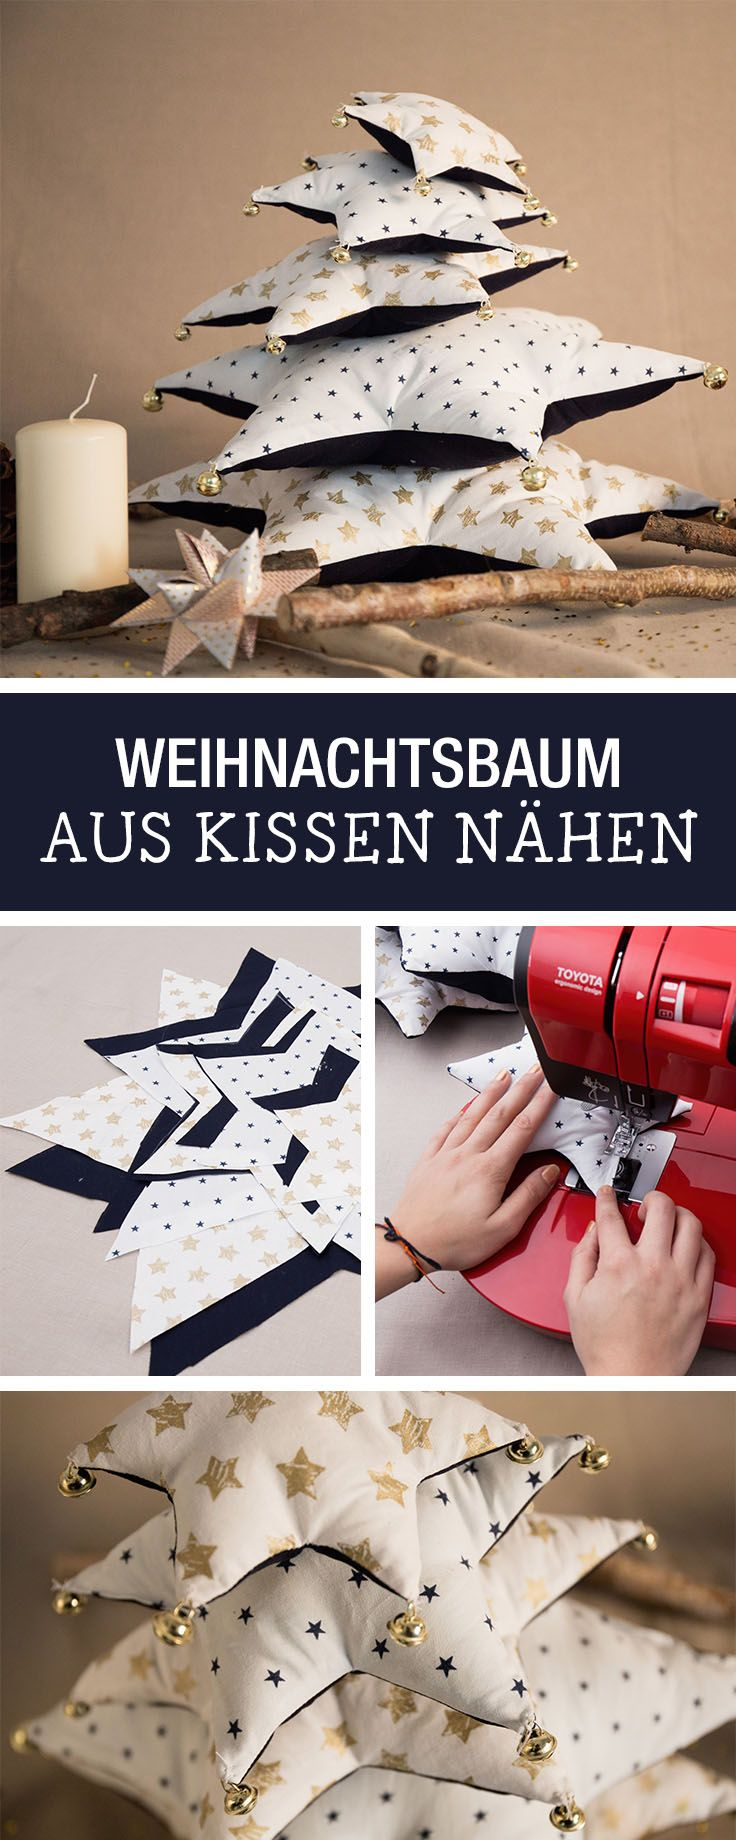 Weihnachtliche Nähanleitung für einen Weihnachtsbaum aus Kissen / cute christmas sewing tutorial: sew a cushion christmastree via DaWanda.com